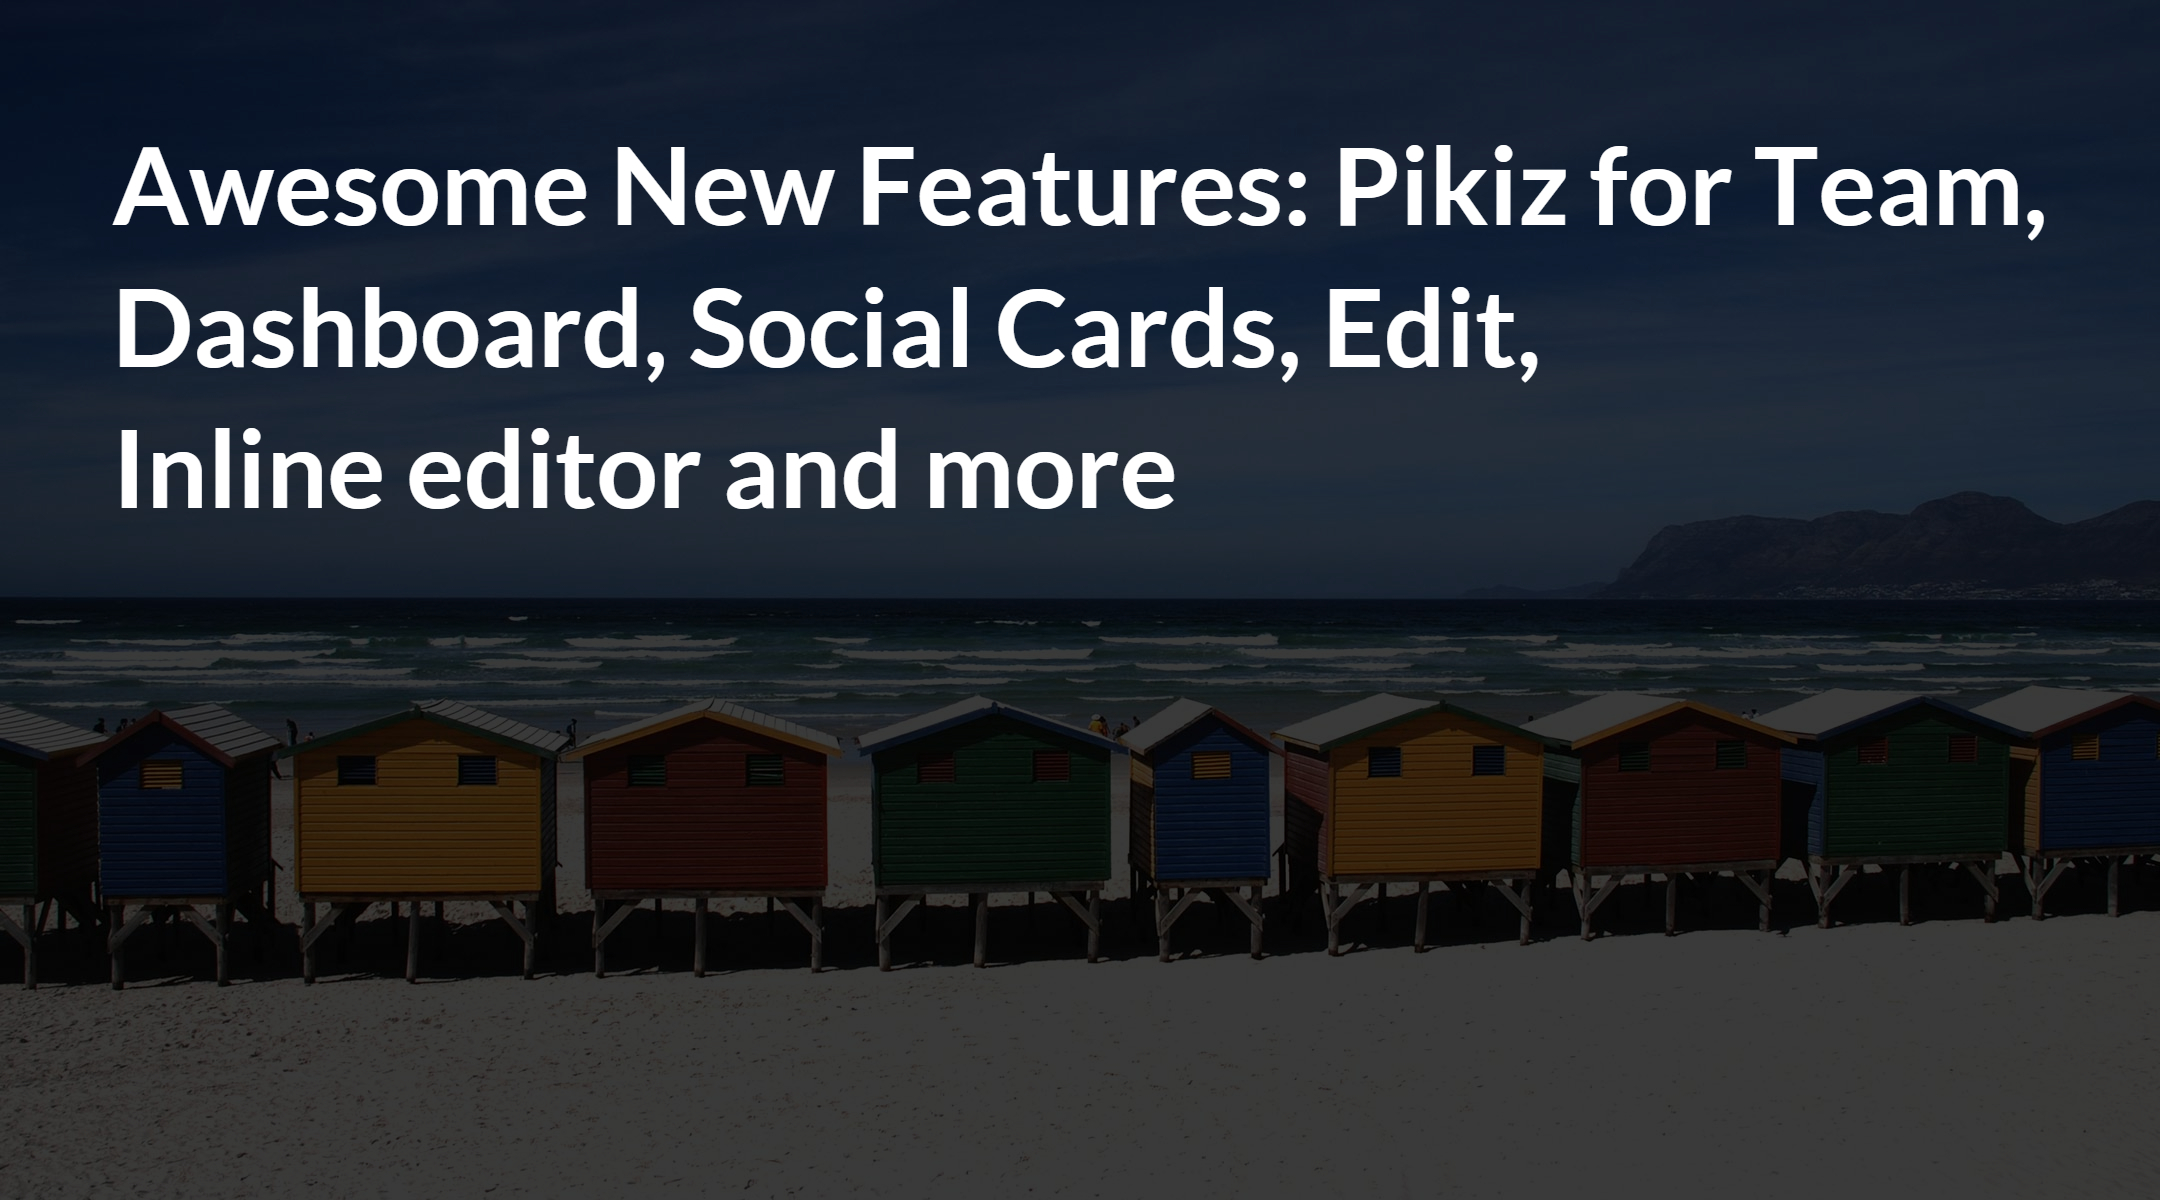 Awesome new features